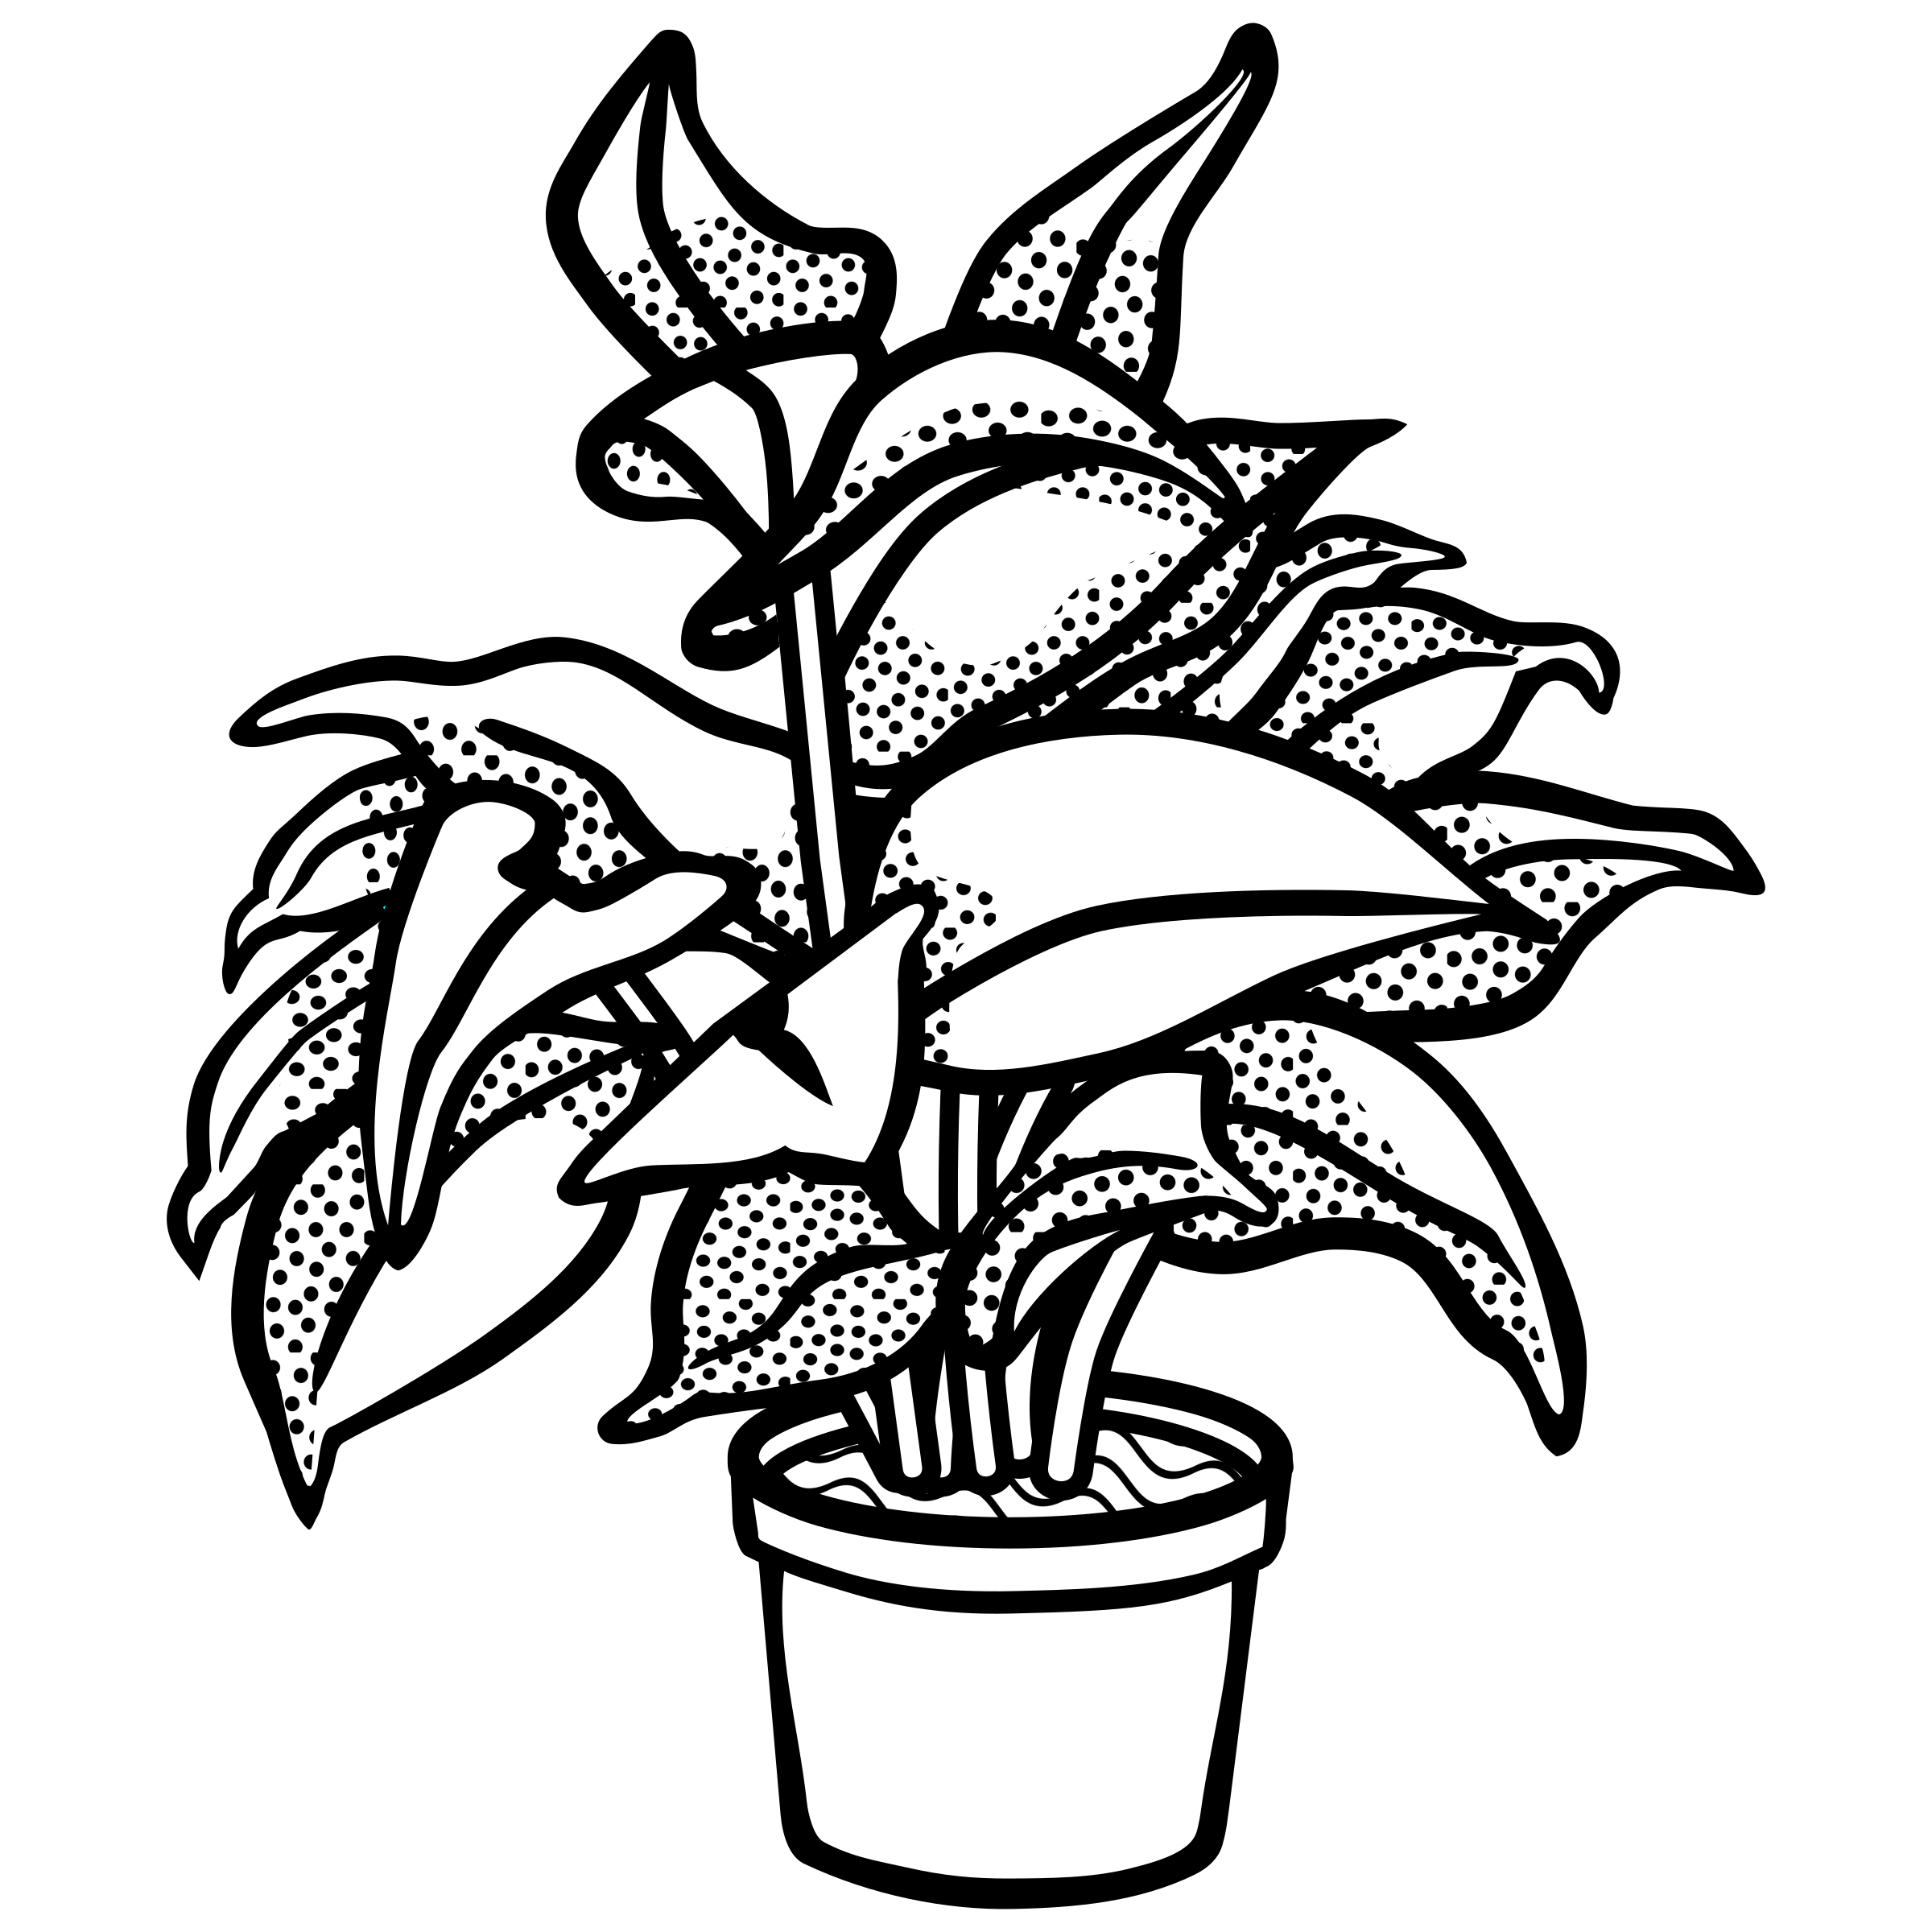 Flower plant clipart black and white banner transparent Plant Drawing Black And White at GetDrawings.com | Free for personal ... banner transparent